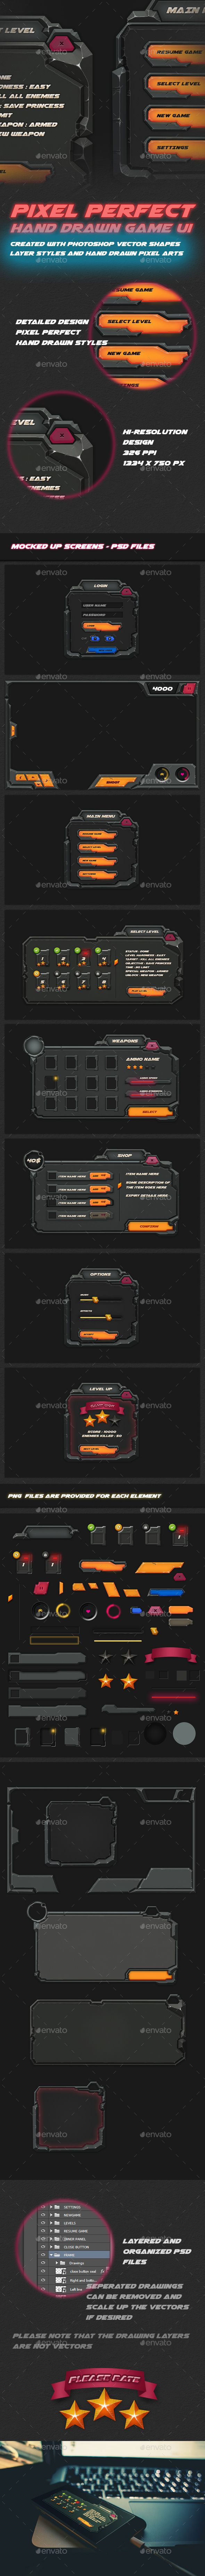 Realistic Game UI PSD